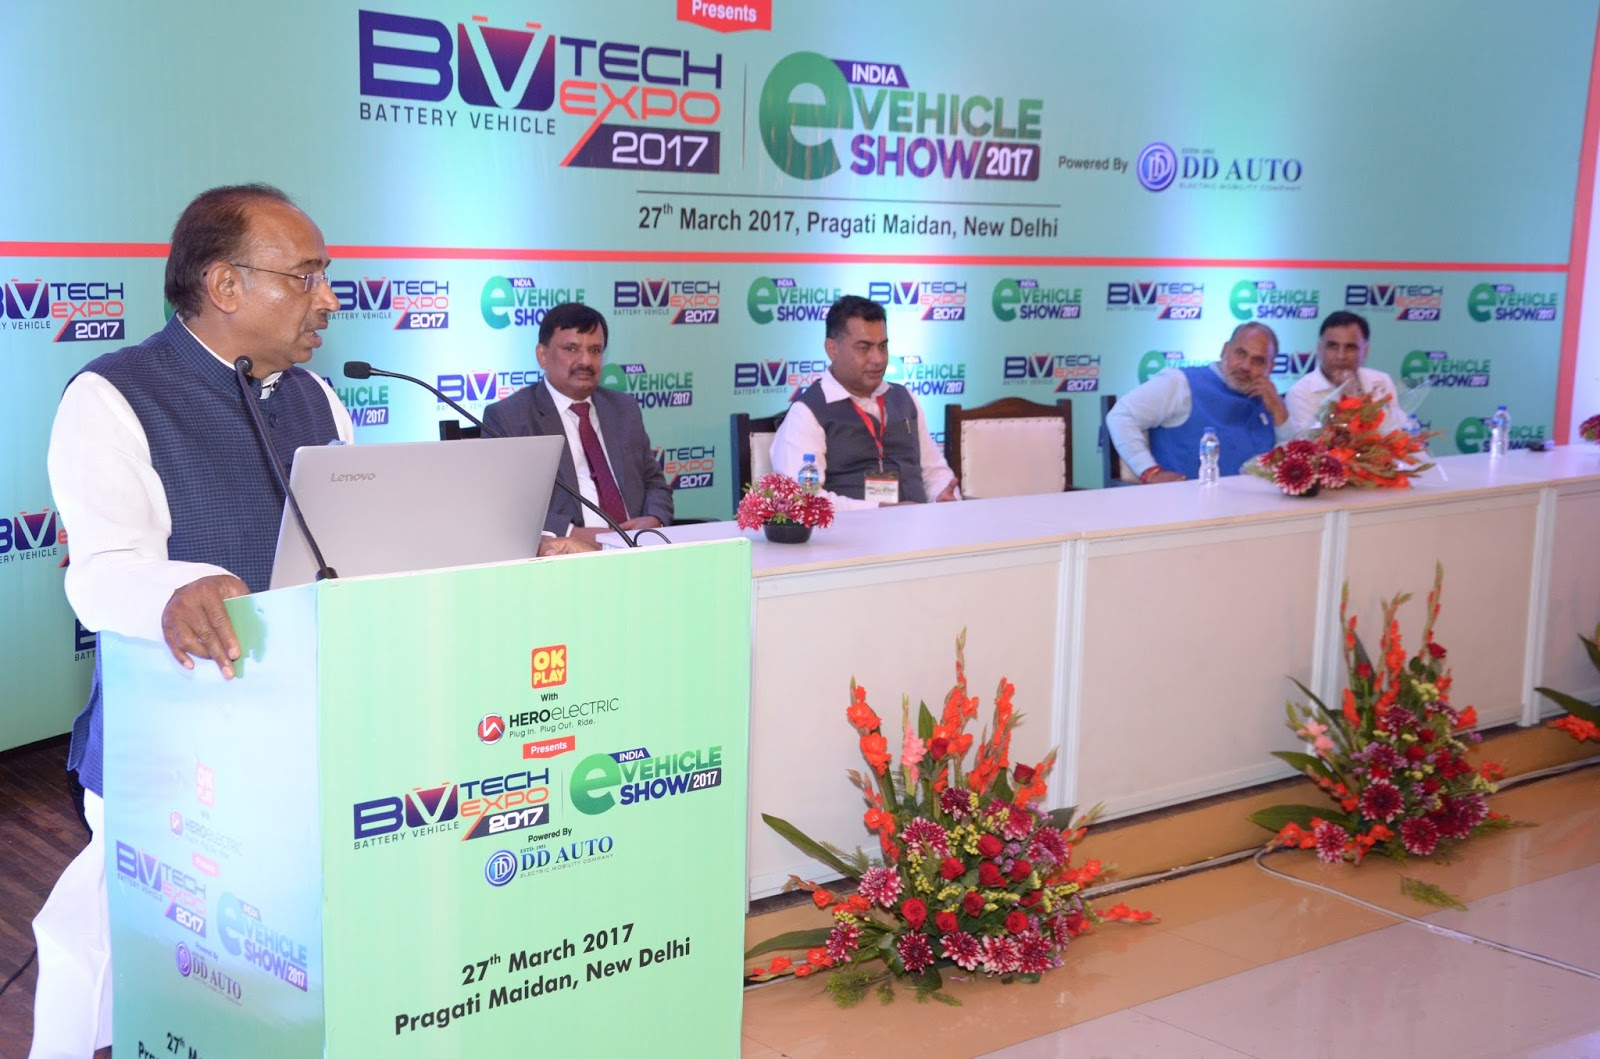 the e vehicle industry is witnessing rapid improvement in technology for e g introduction of lithium ion batteries in e vehicles for public transport as